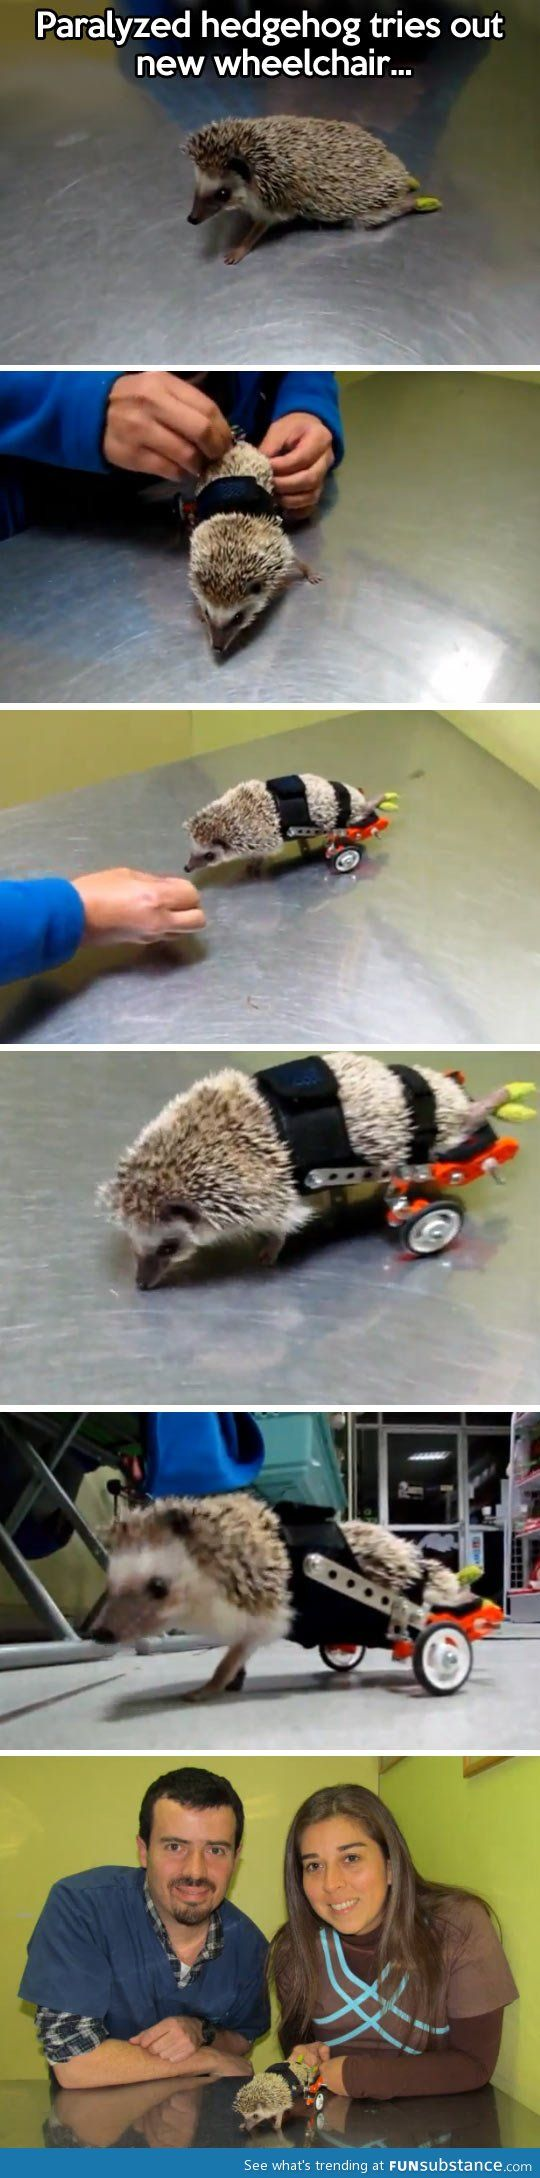 Paralyzed hedgehog fitted with wheels